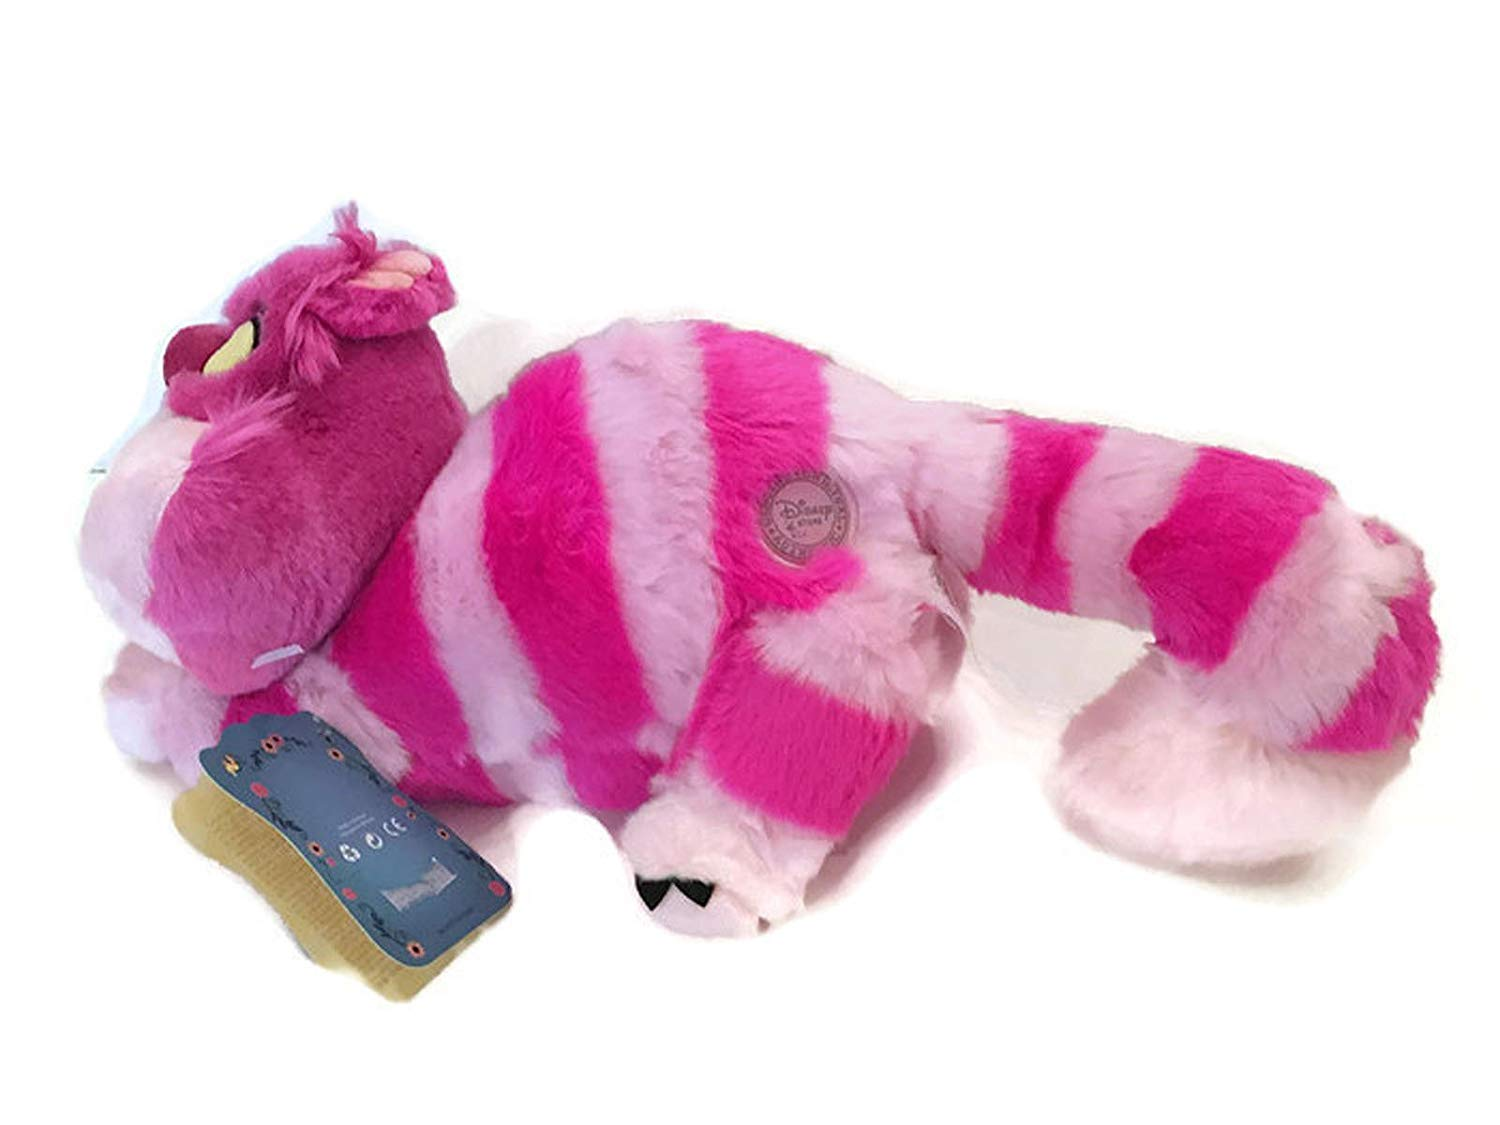 Cheshire Cat Plush Stuffed Animal Toy for Alice in Wonderland by Plush Garden